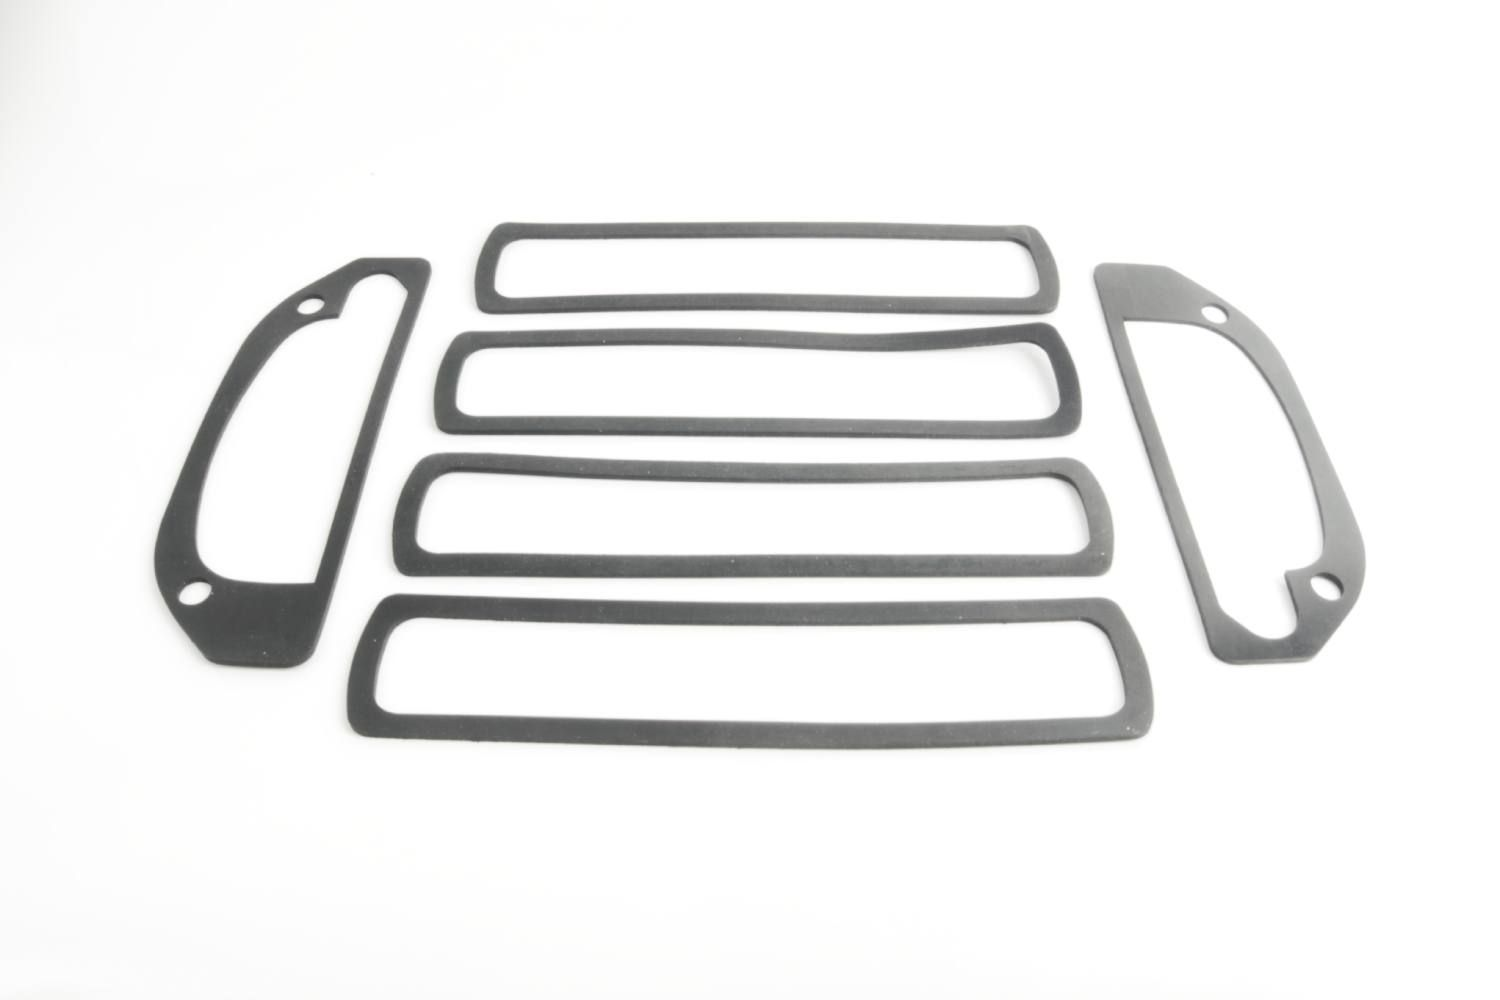 Image - Outer Door Handle, Rear Badge & Front Repeater Lamp - Rubber Gasket Set